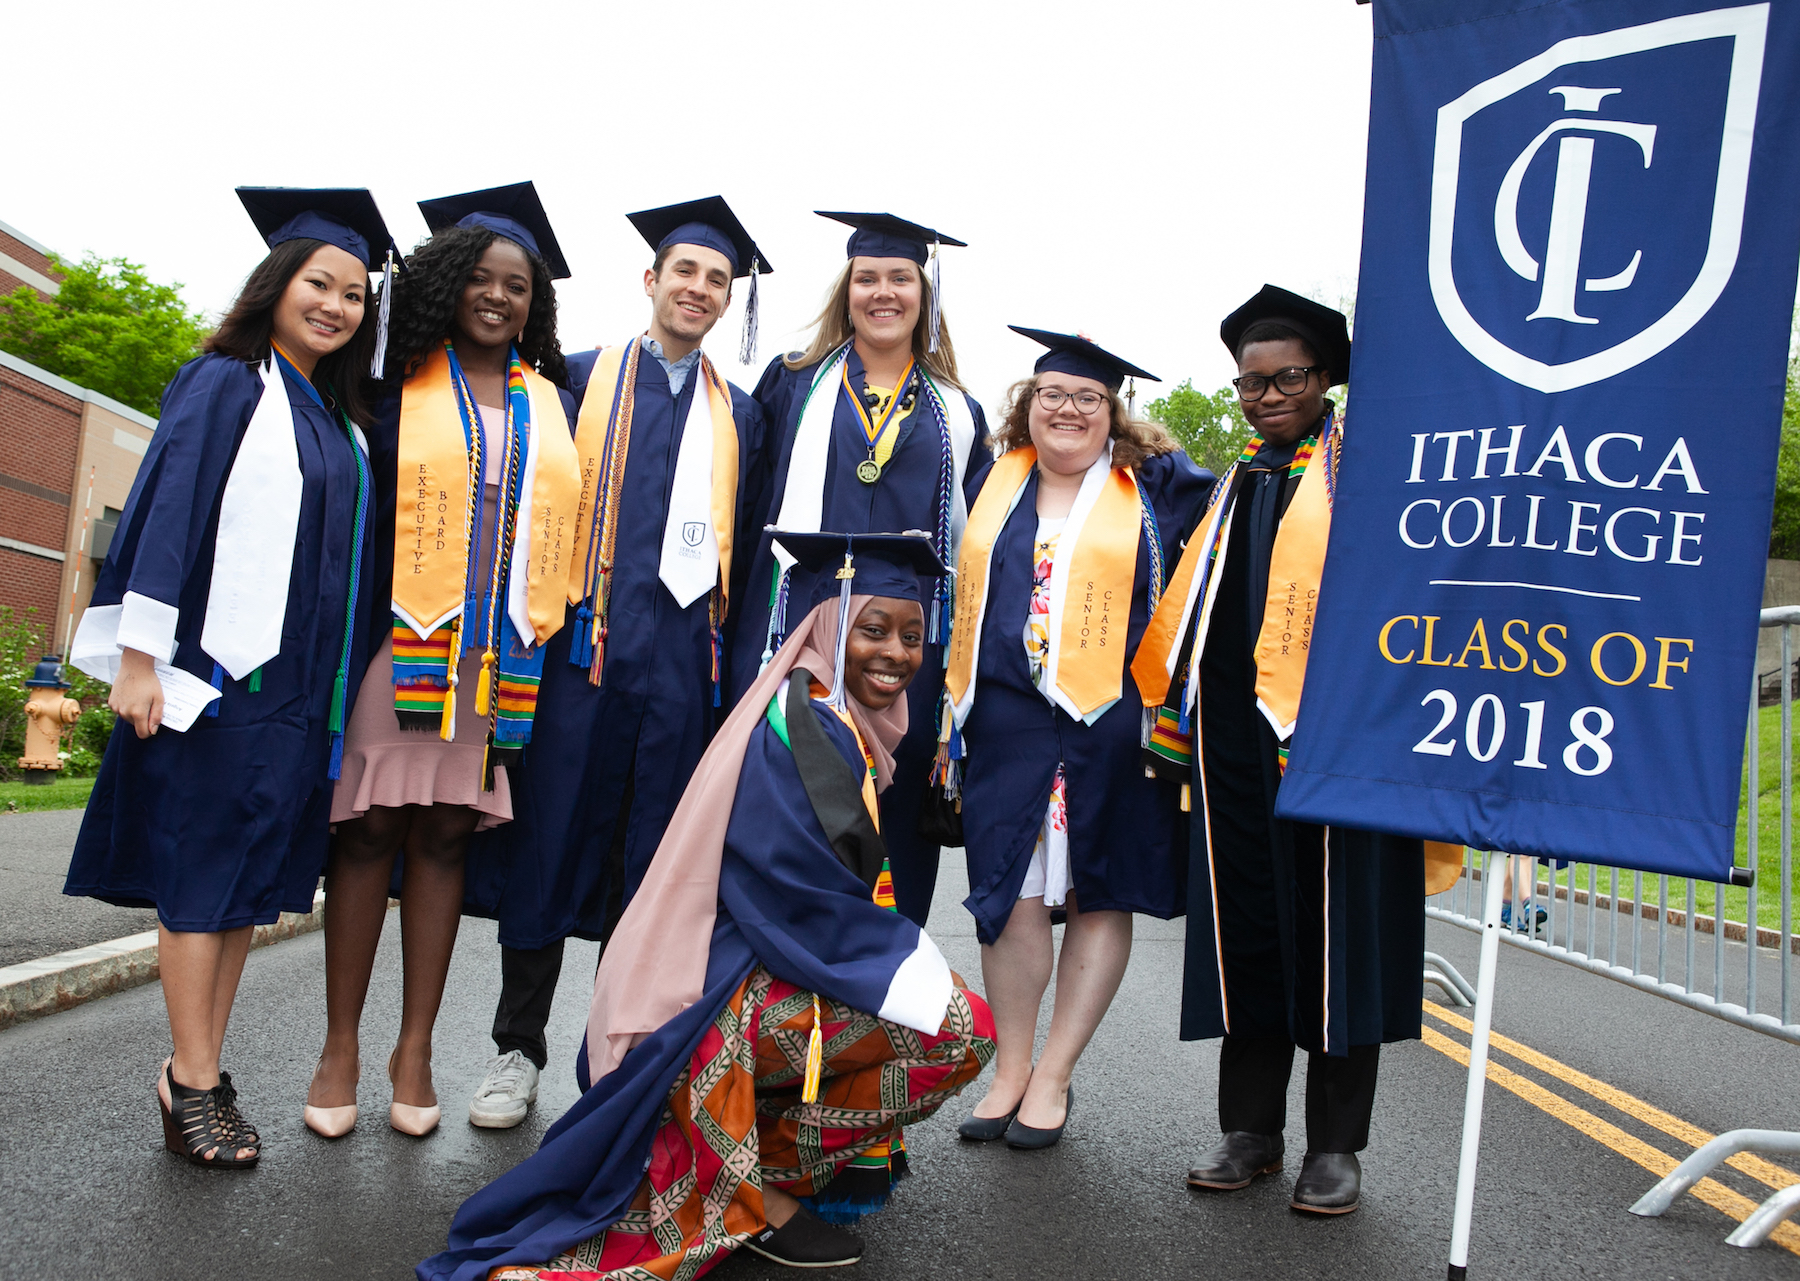 A diverse group of male and female graduates poses with a Class of 2018 banner.